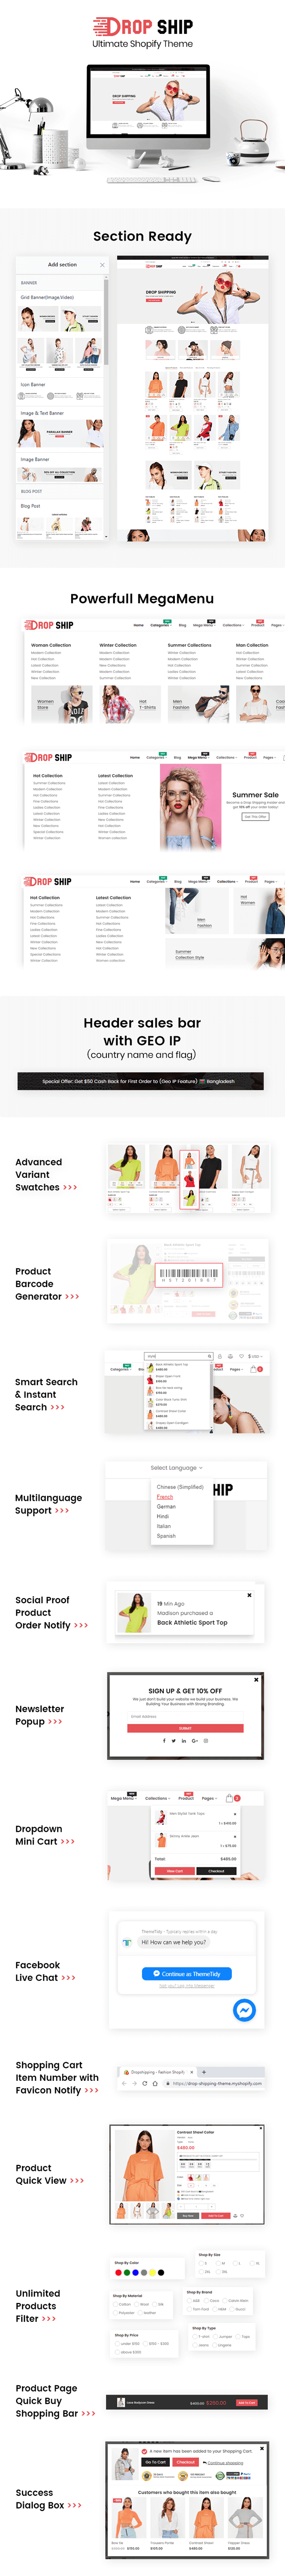 Dropshipping - Fashion Shopify Theme Multipurpose Responsive Template